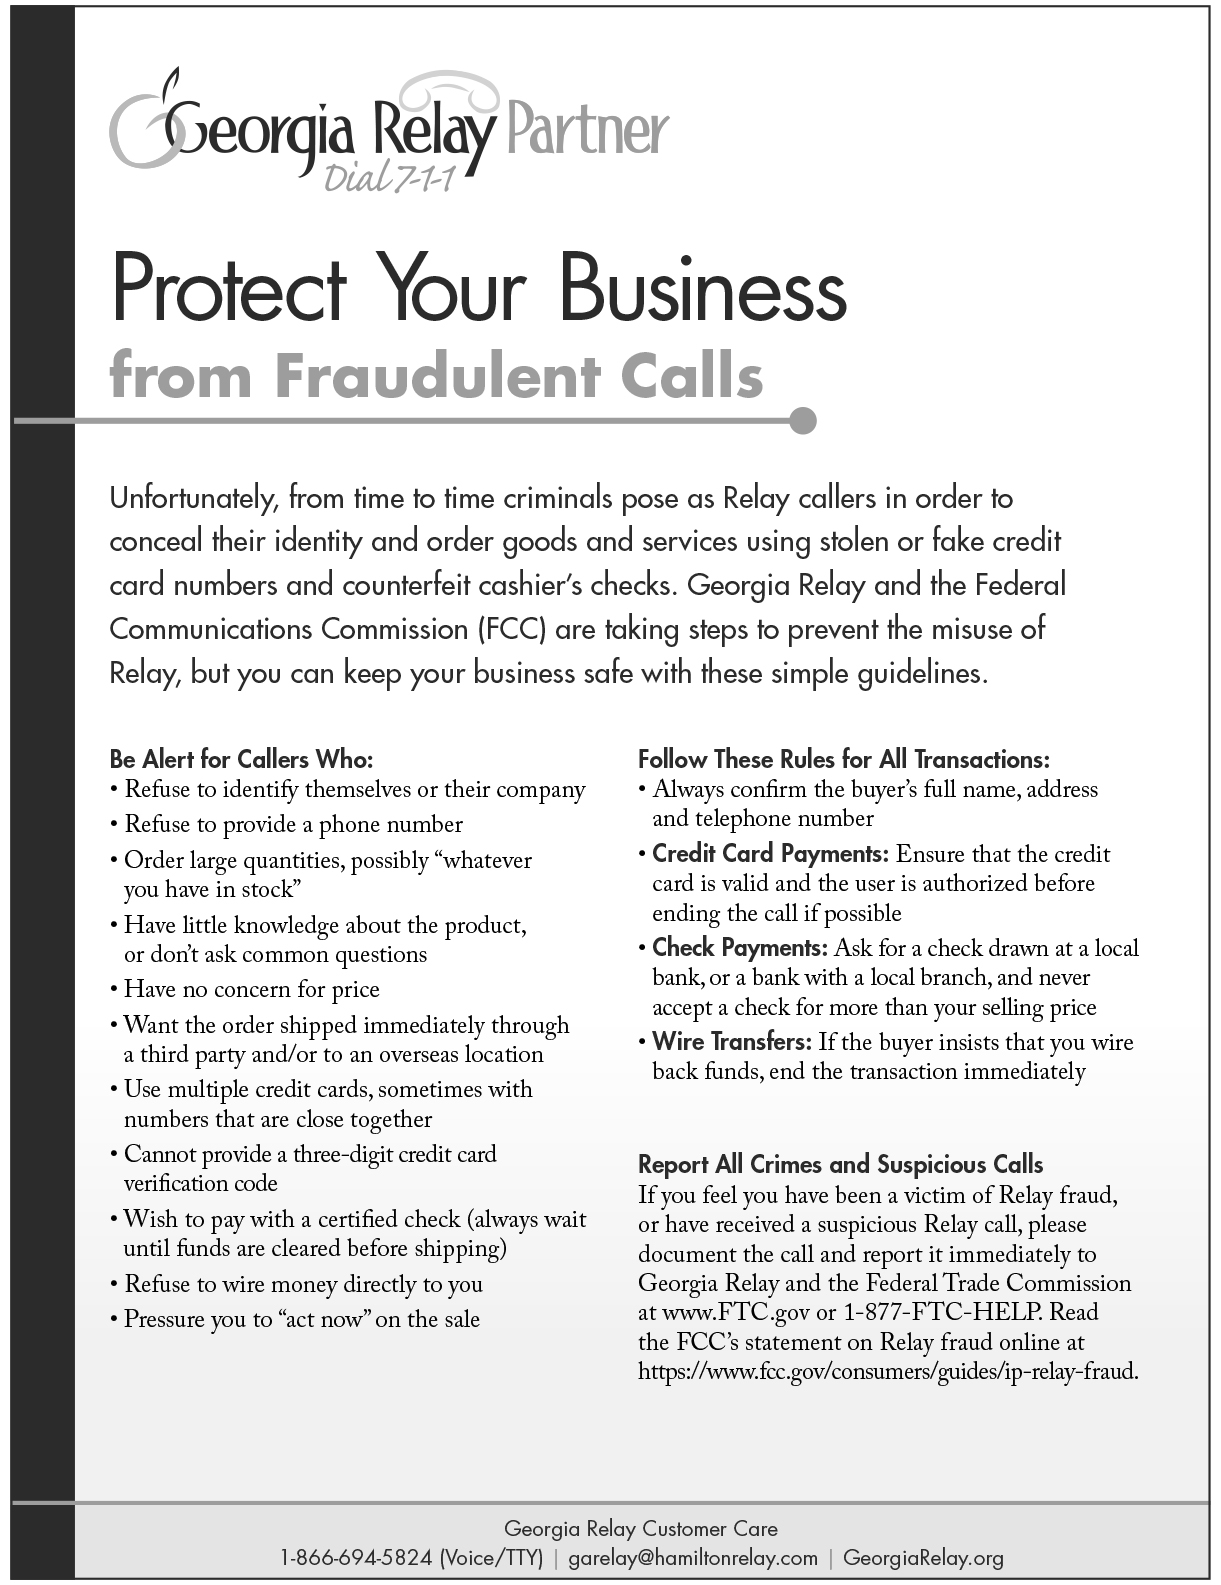 Protect Your Business Snapshot